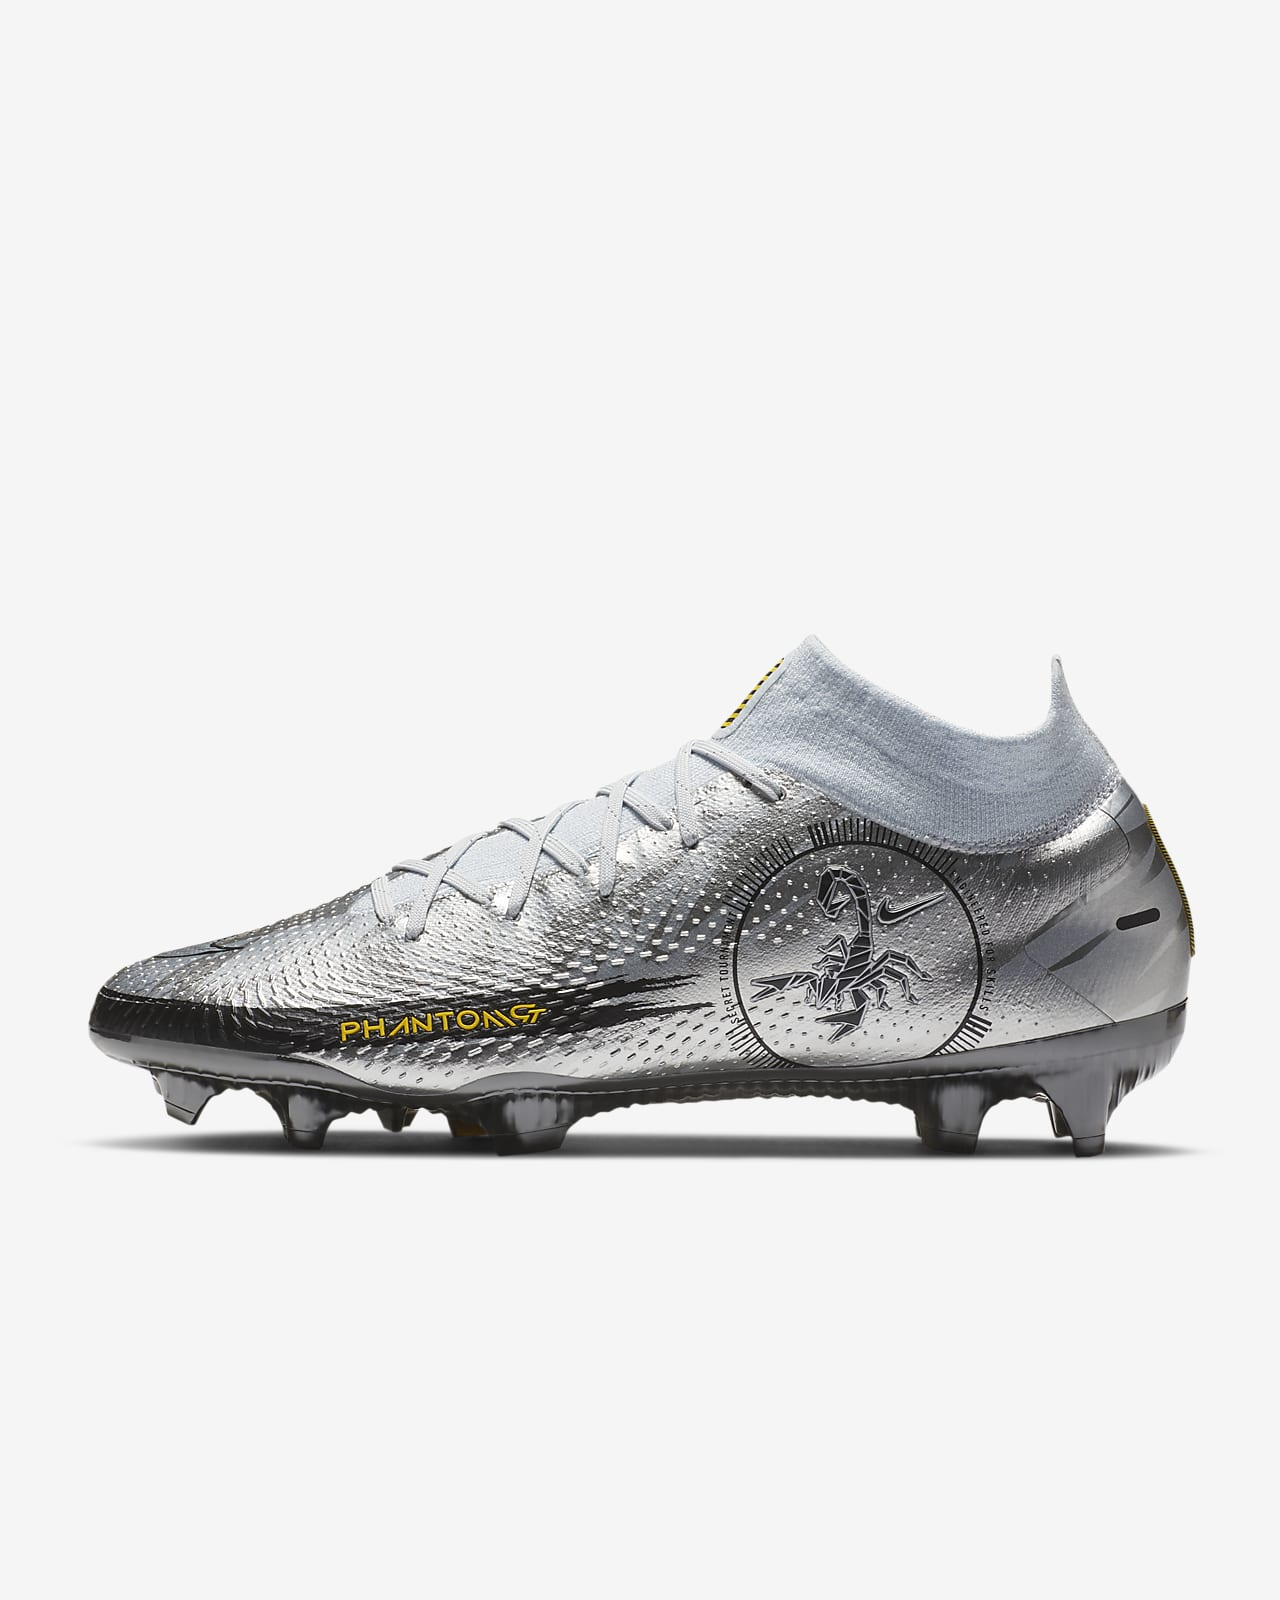 Nike Phantom Scorpion Elite Dynamic Fit FG Firm-Ground Football Boot